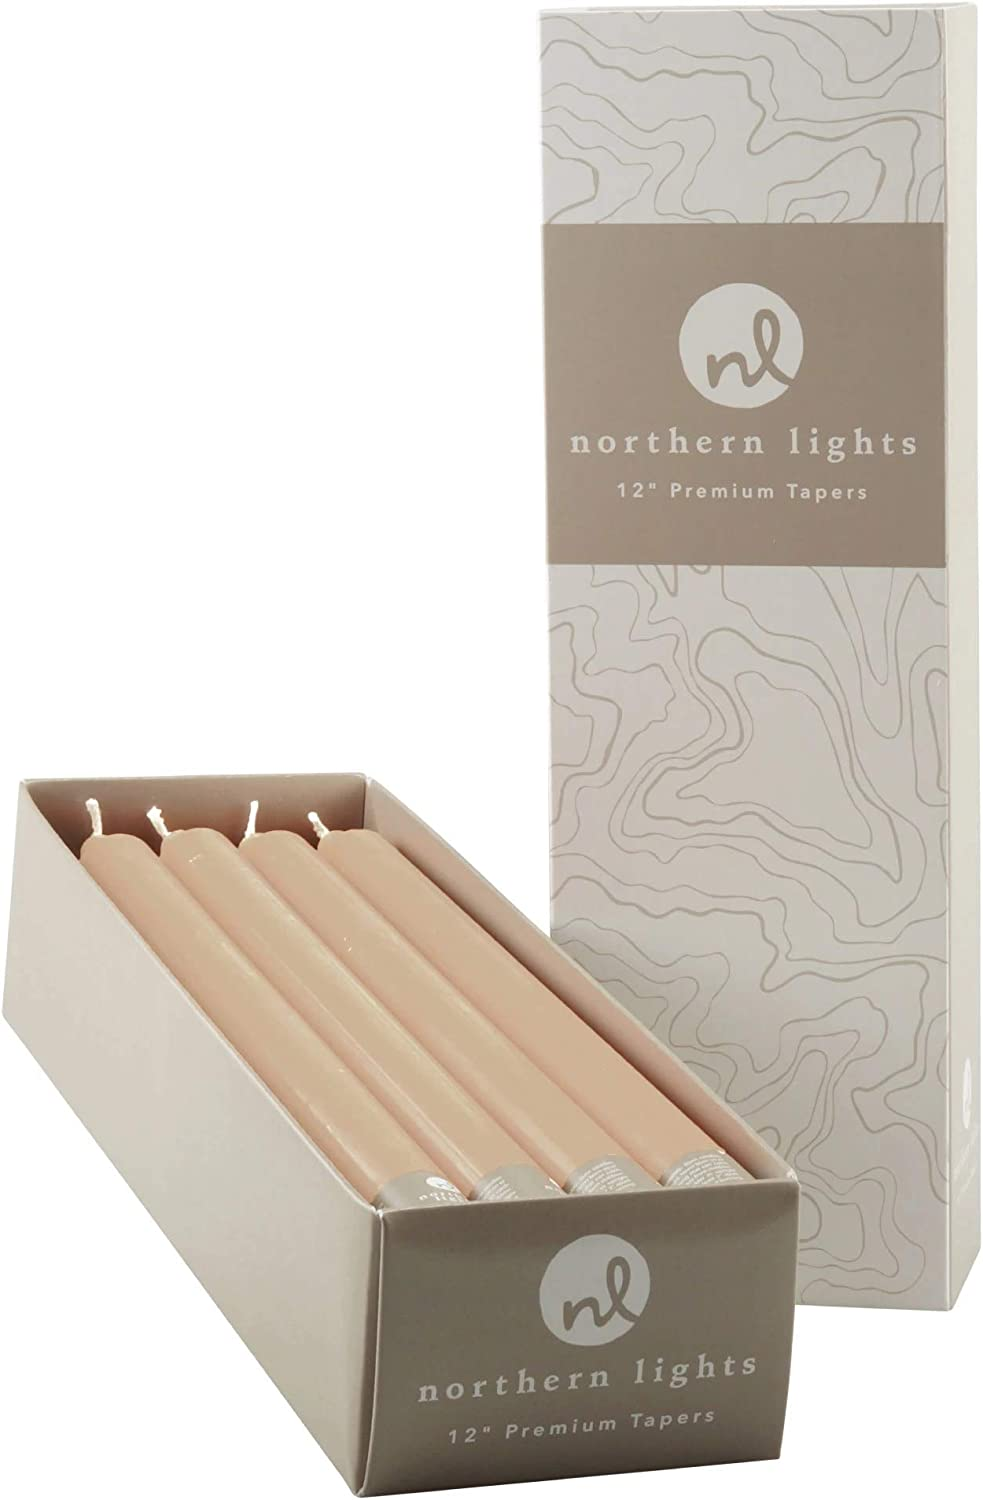 Northern Lights New product!! Candles Candle Tan Tapers Max 64% OFF 12